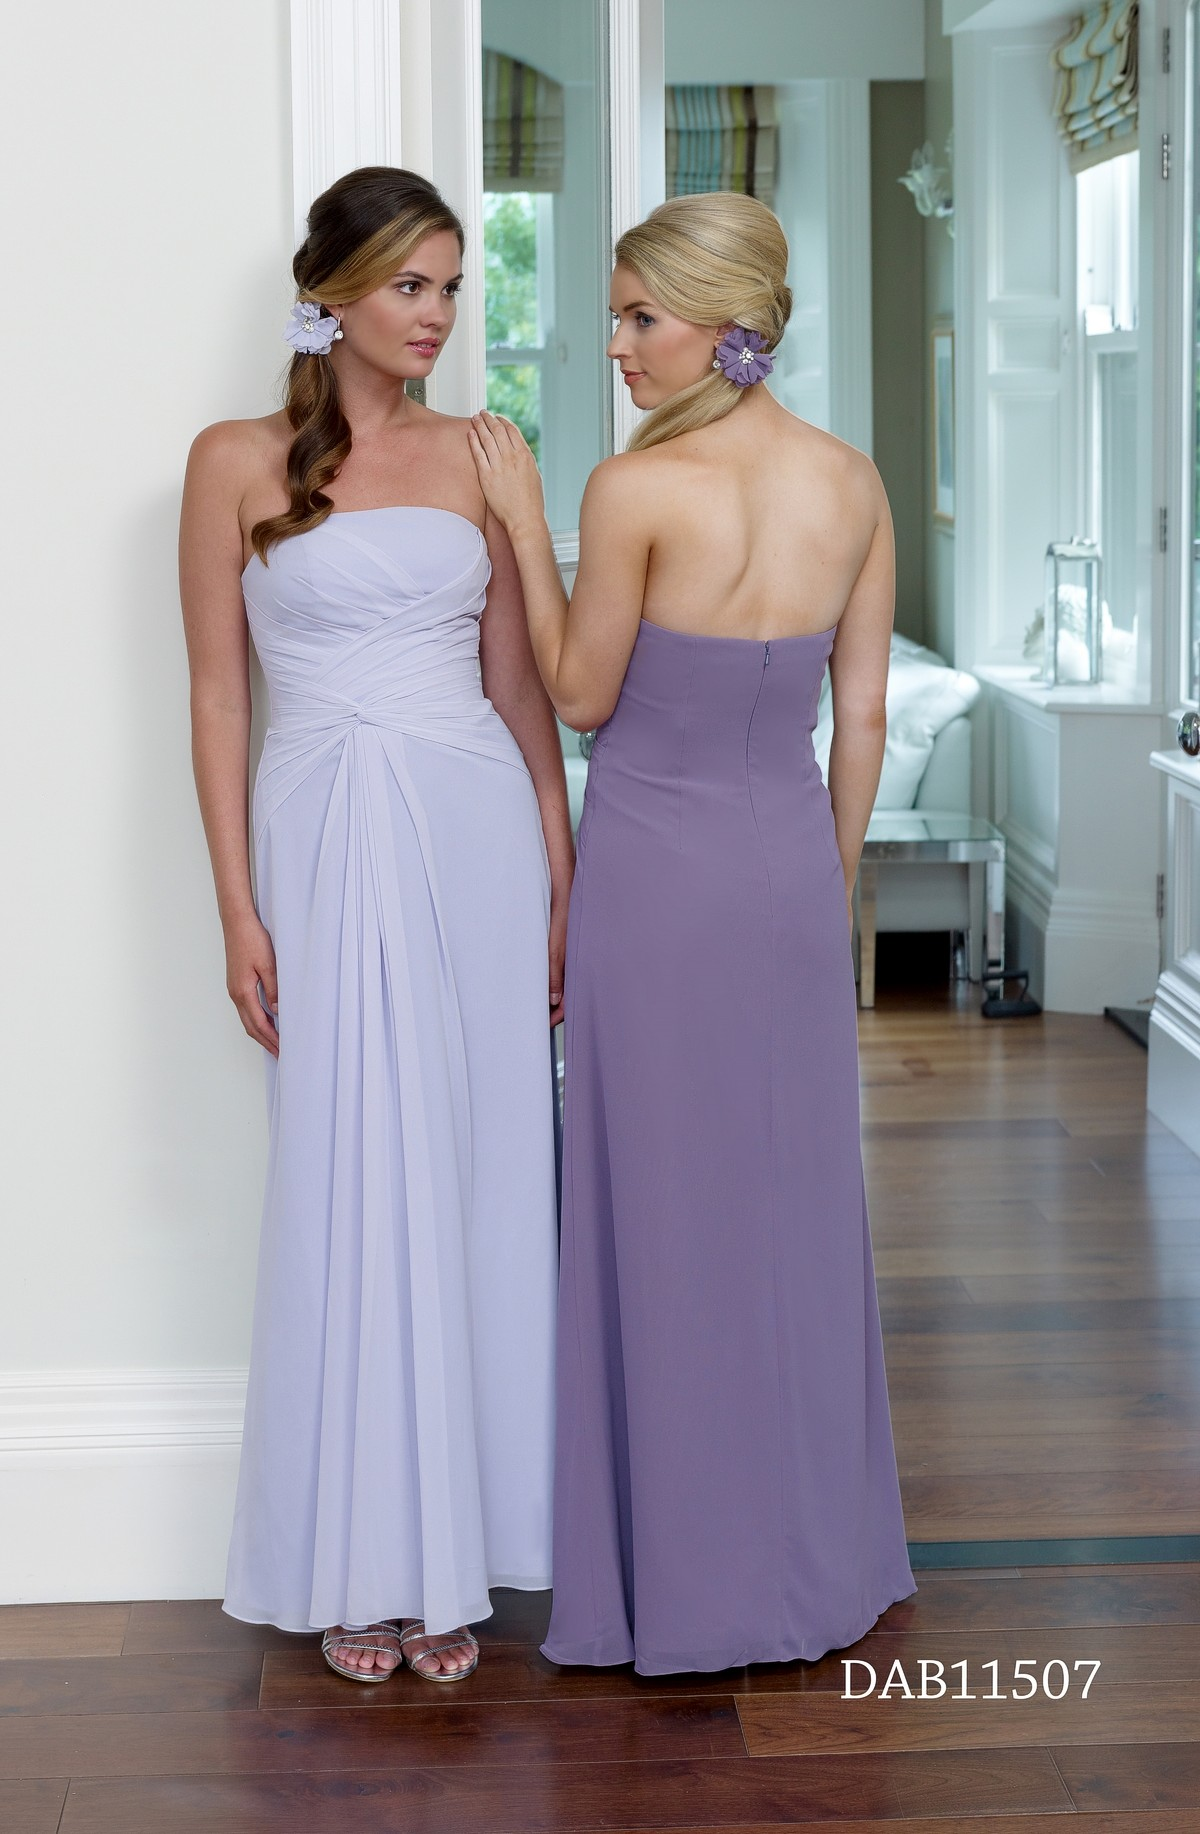 Dab11507 dzage bridesmaid collection veromia move your cursor over the images to zoom in on the detail if the zoom does not work immediately press refresh ombrellifo Choice Image